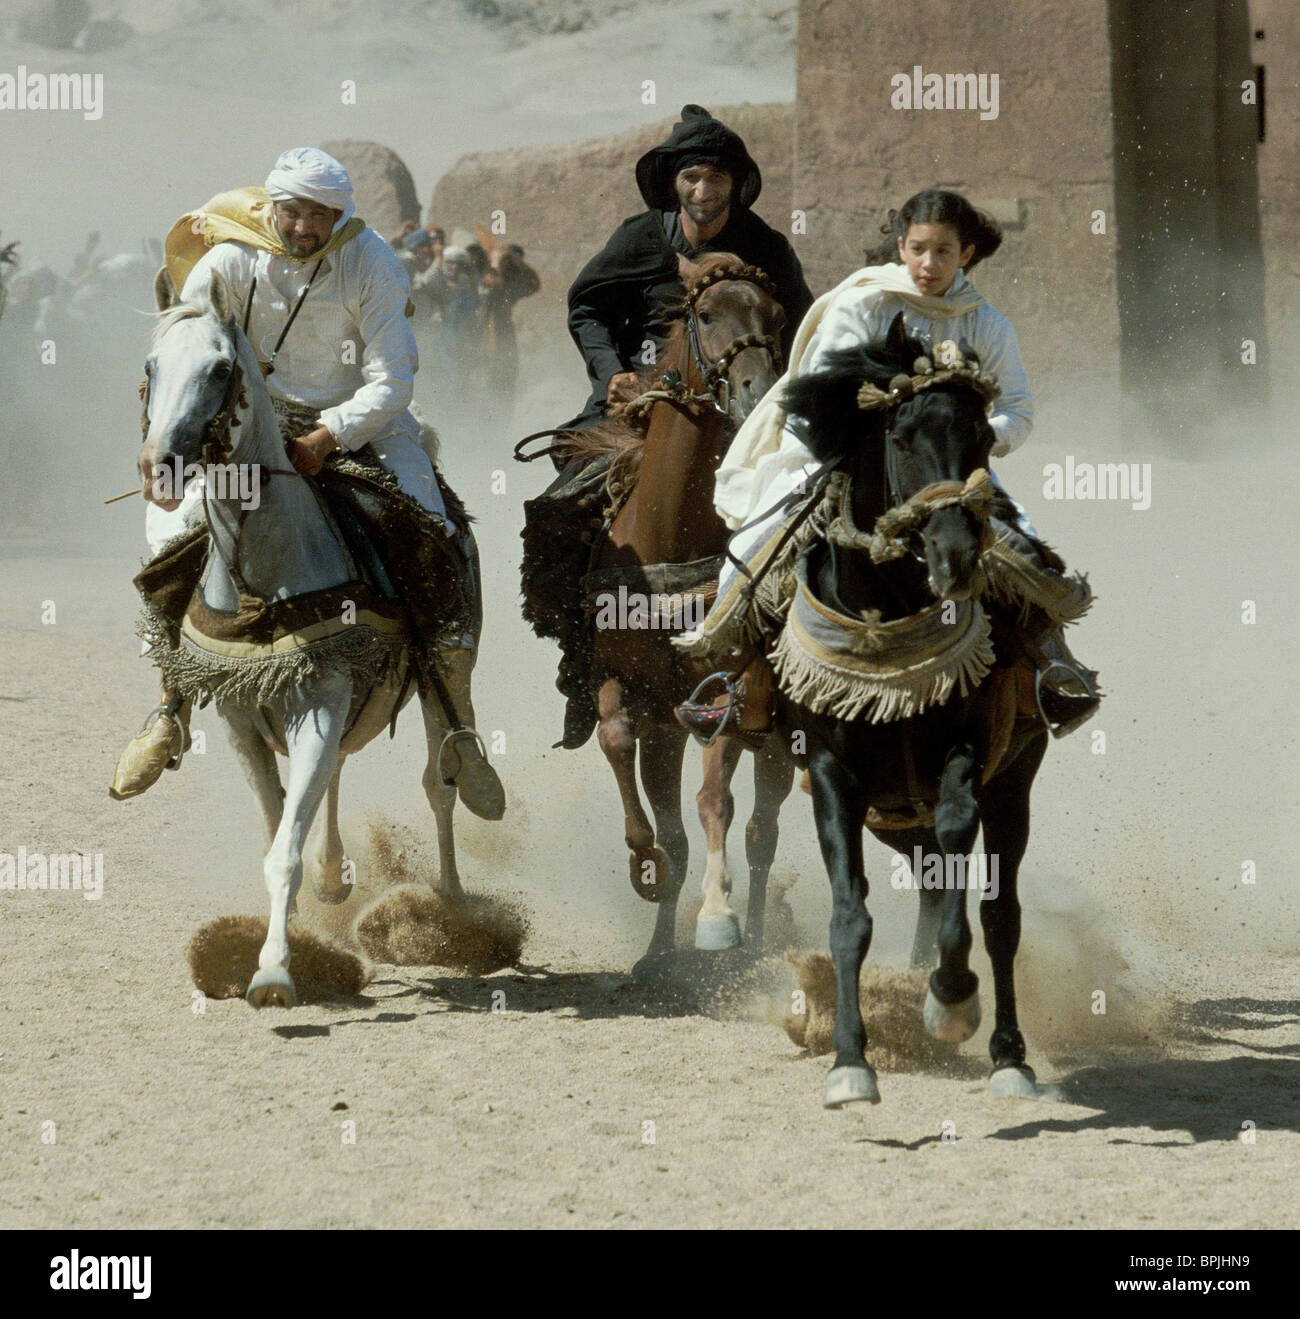 GERARD RUDOLF ALI AL AMERI & BIANA TAMIMI THE YOUNG BLACK STALLION (2003) - Stock Image